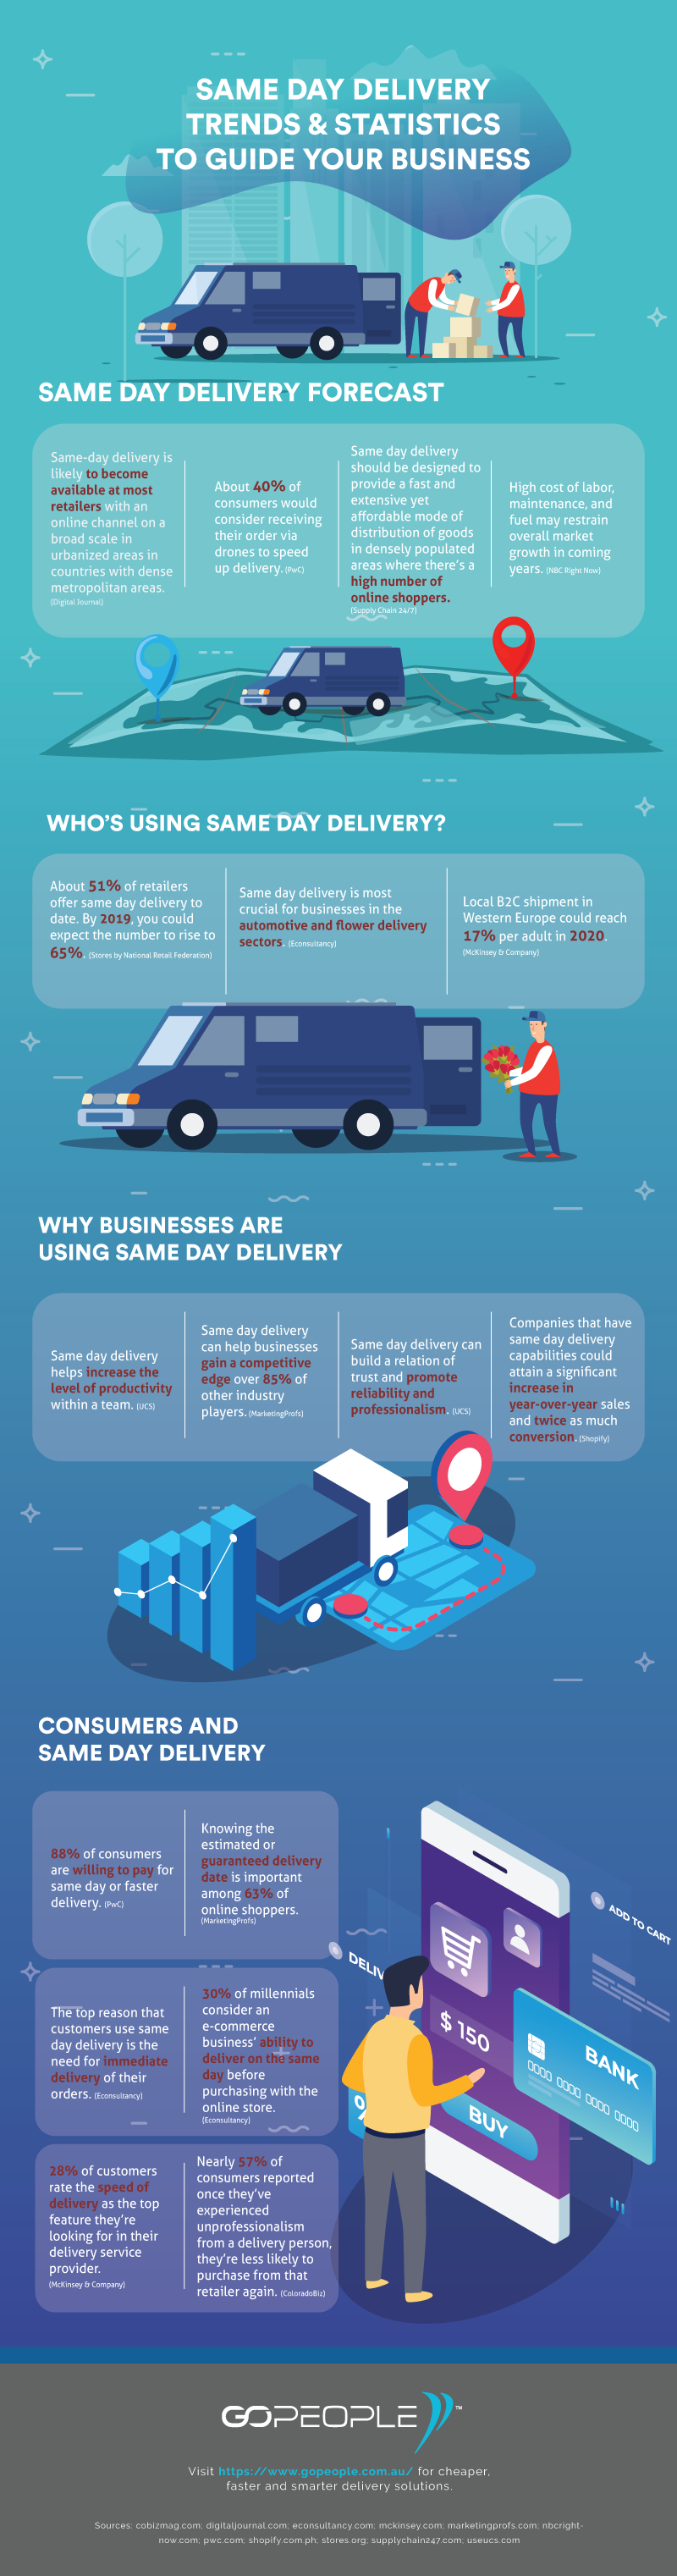 Growth of Same-Day Delivery: 65% of Retailers Will Offer It by 2019 (INFOGRAPHIC)